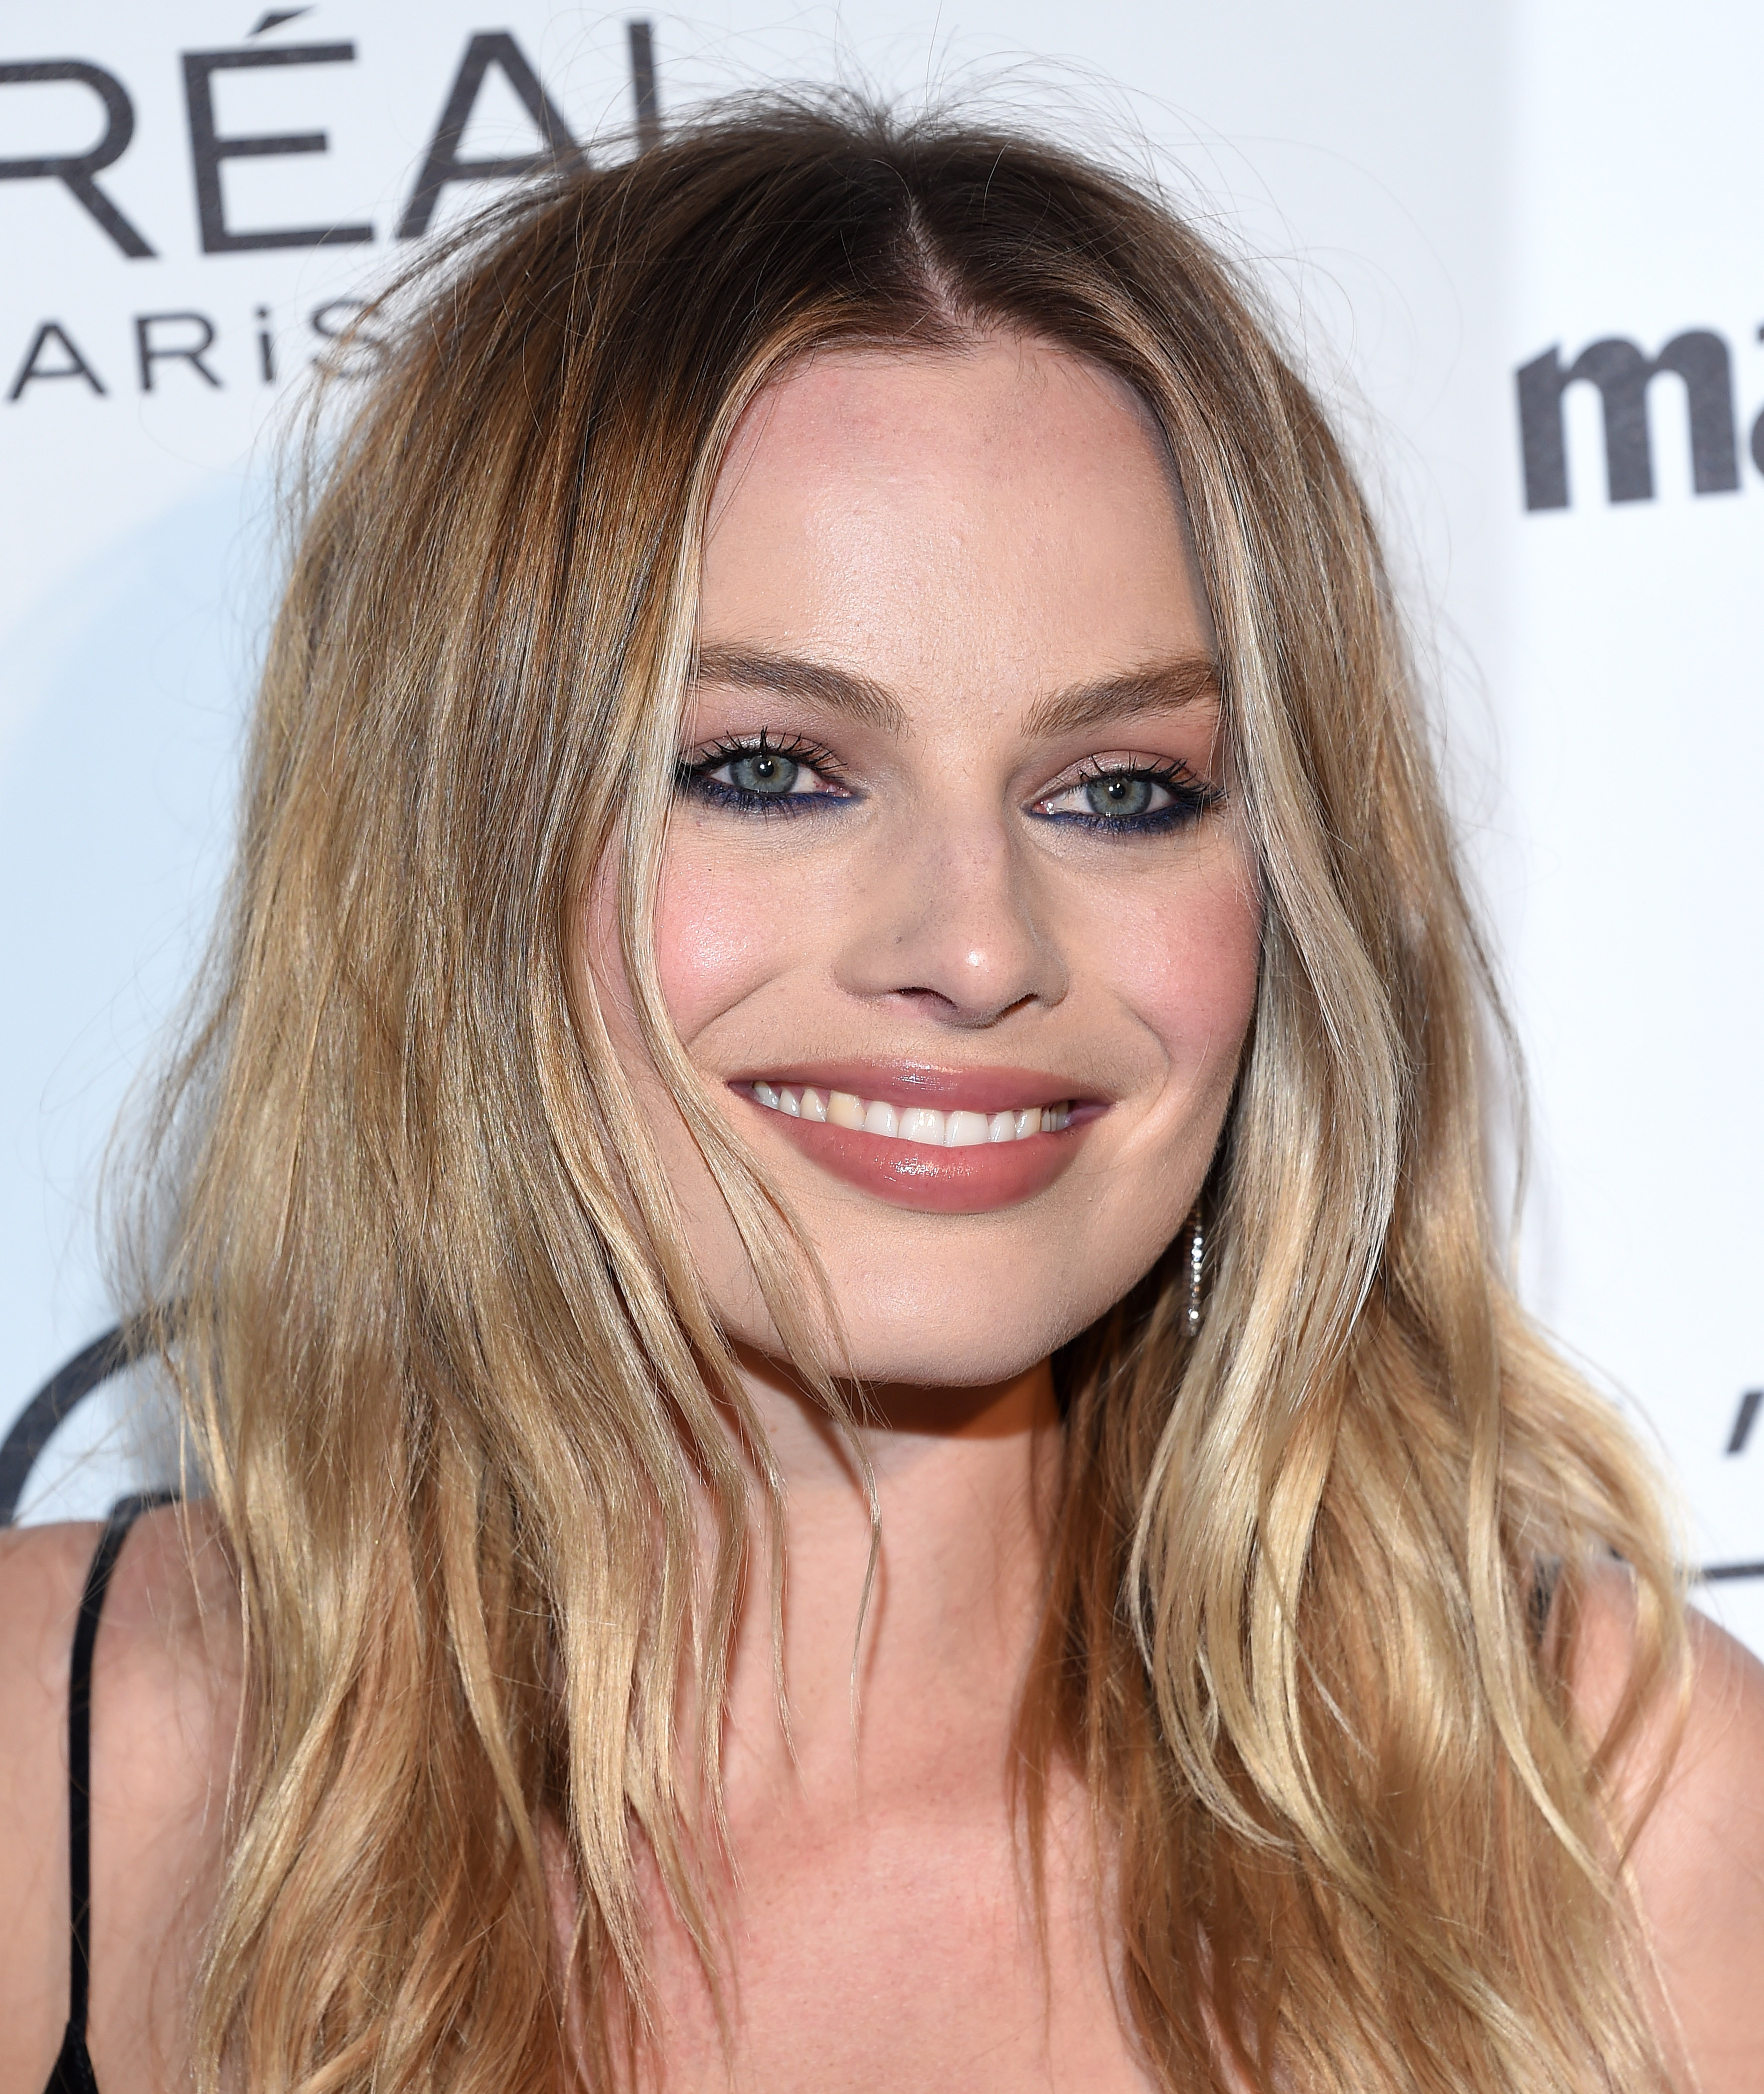 Margot Robbie attends Marie Claire's 2nd Annual Image Makers held at Catch LA, Image: 310515350, License: Rights-managed, Restrictions: World rights except USA, France, Germany, Spain, Italy, Australia& NZ, Switzerland, Holland, Poland and South Africa., Model Release: no, Credit line: Profimedia, Press Association